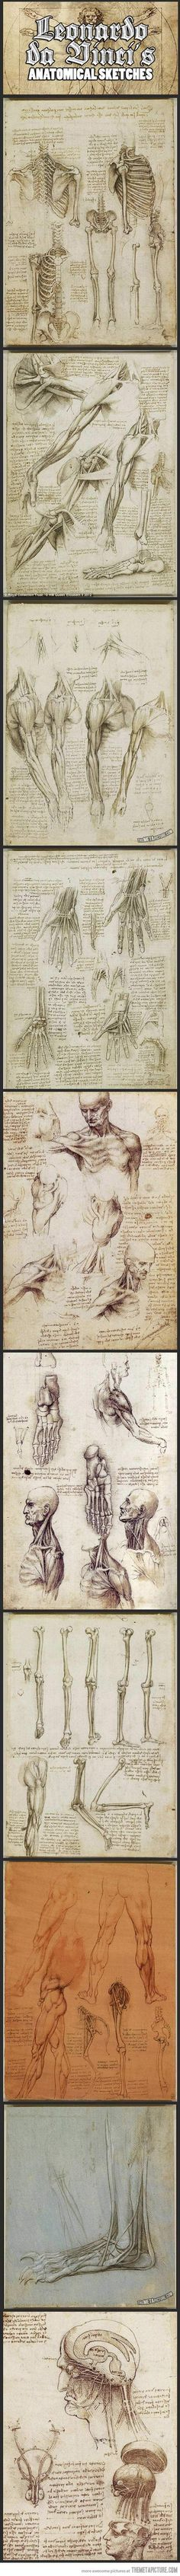 Leonardo da Vinci's anatomical sketches…the worlds best in my humble opinion x